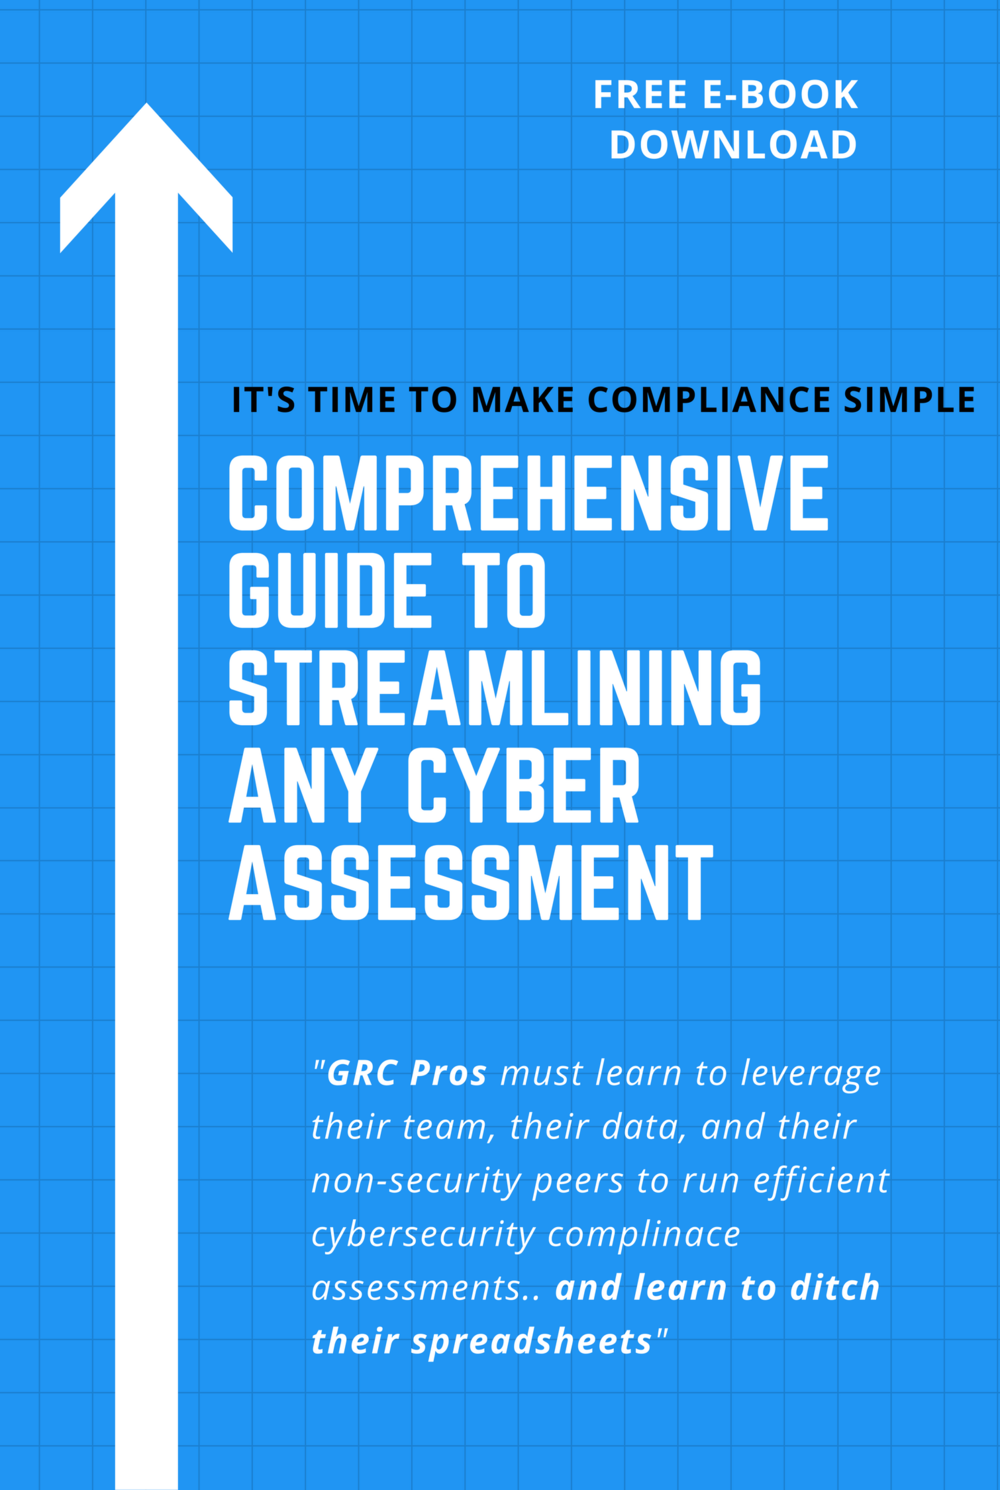 cyber security assessments guide